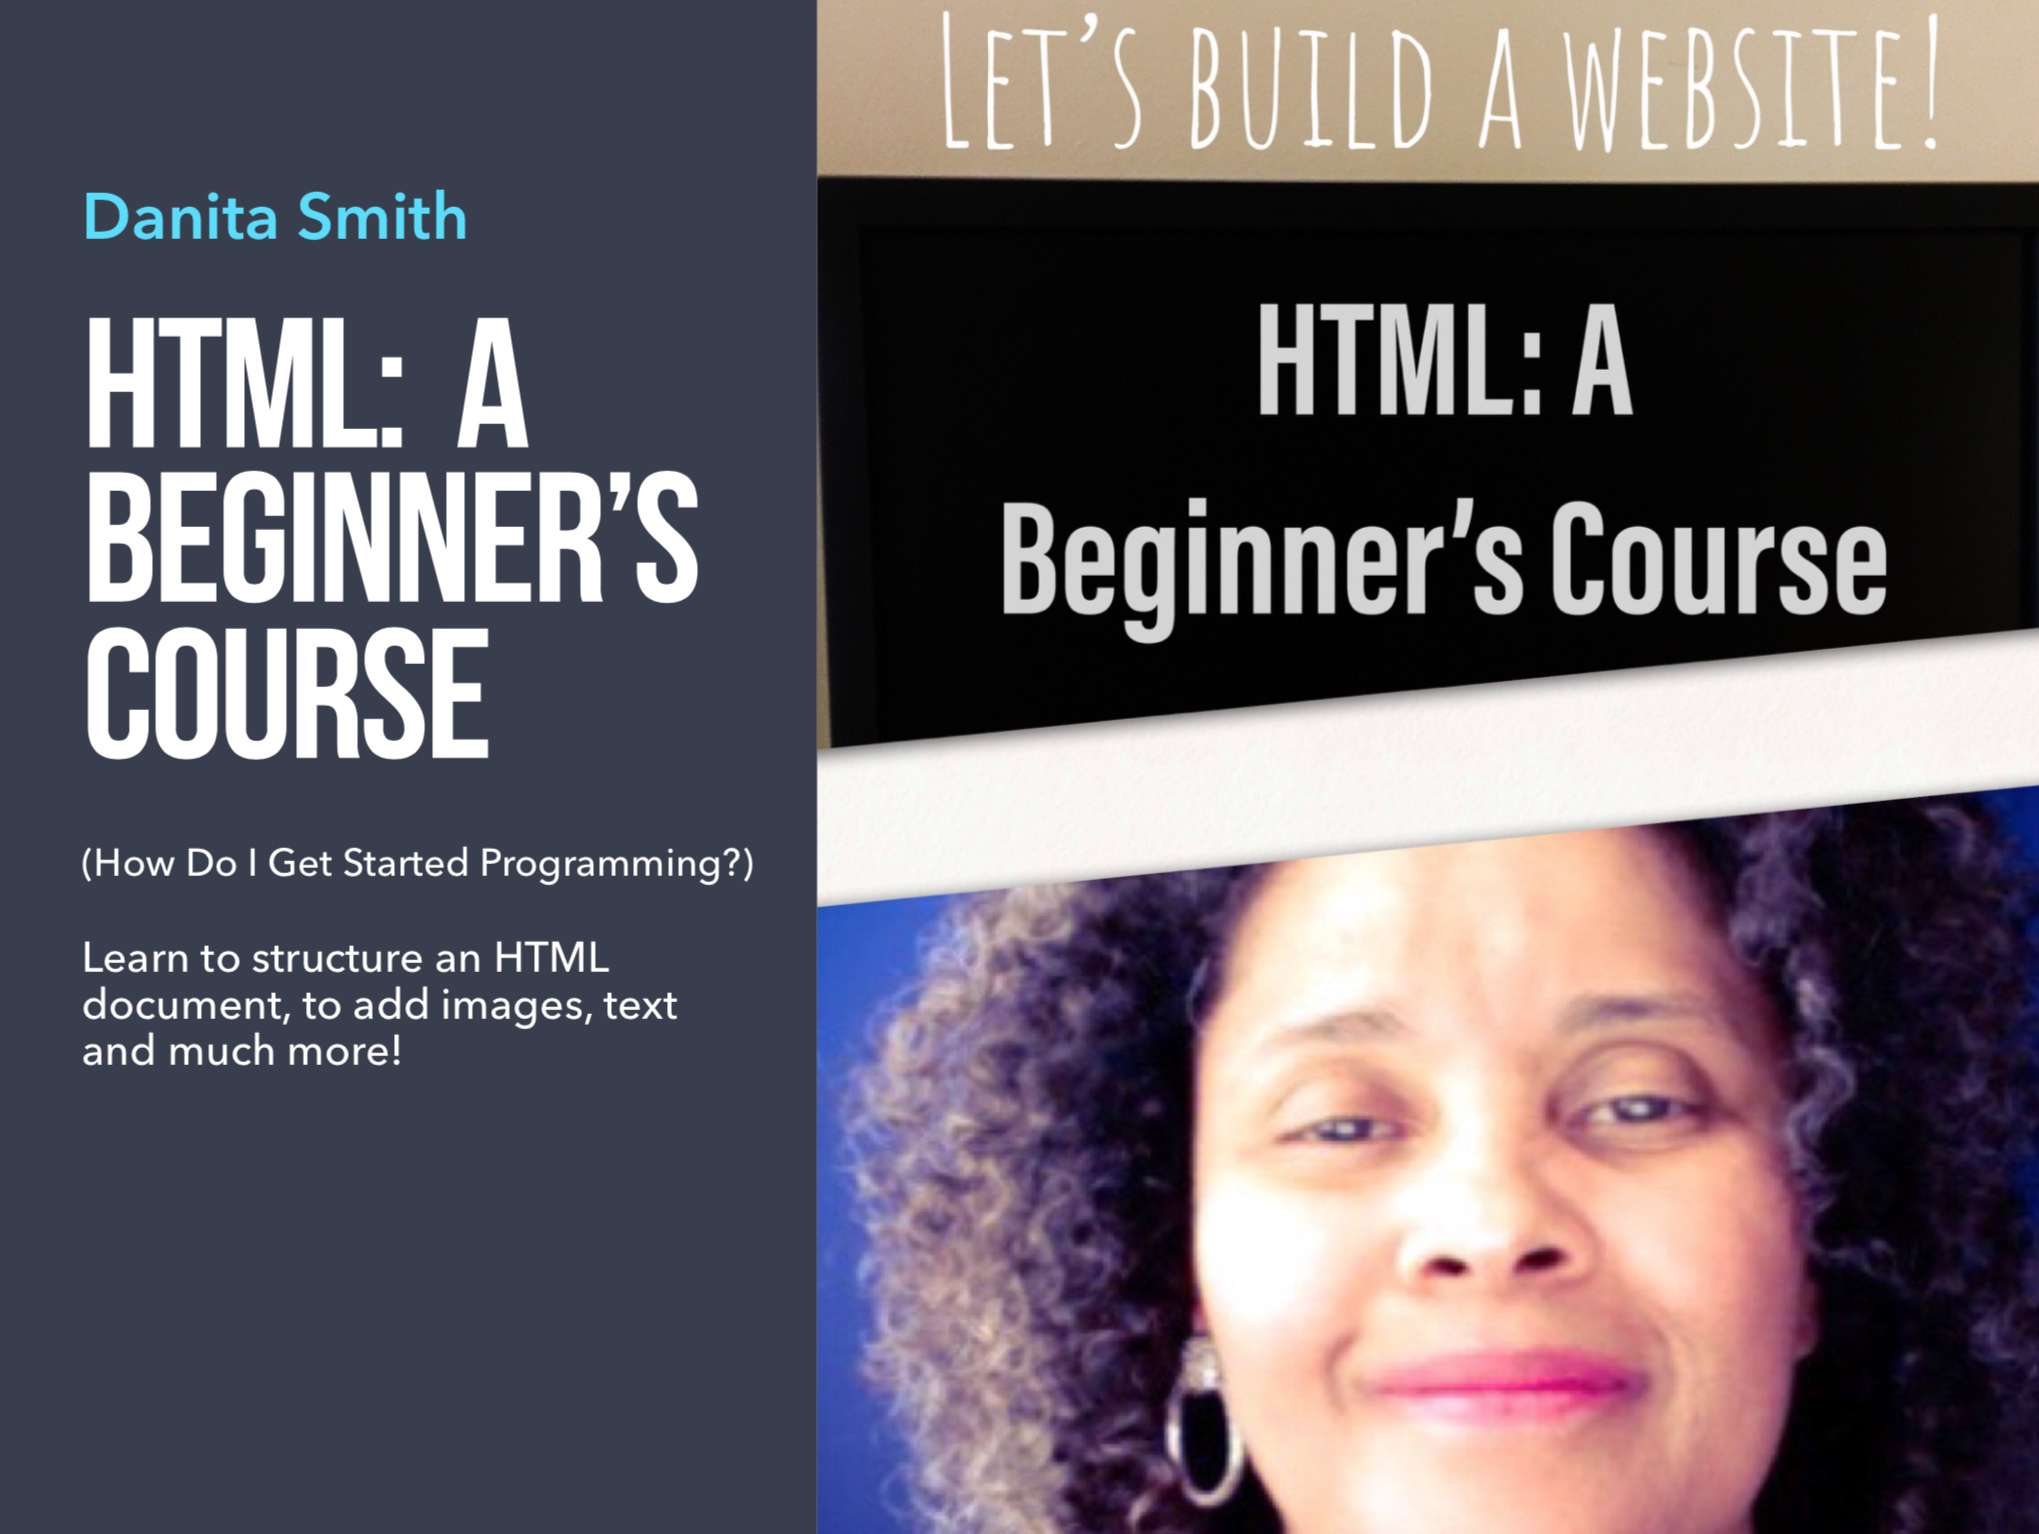 HTML: A Beginner's Course